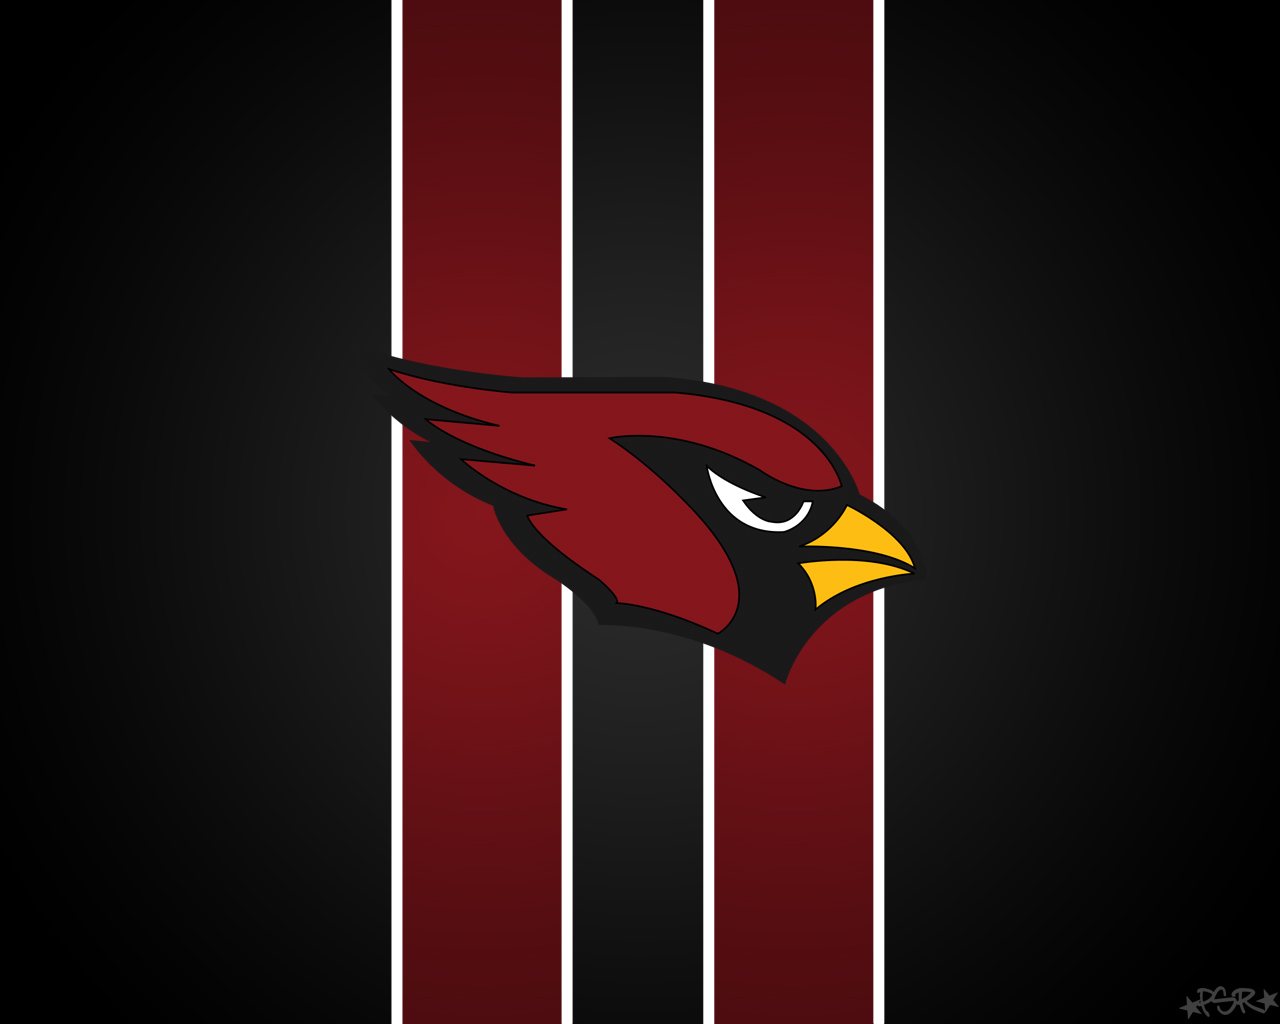 Charming Arizona Cardinals Wallpapers 1280x1024px